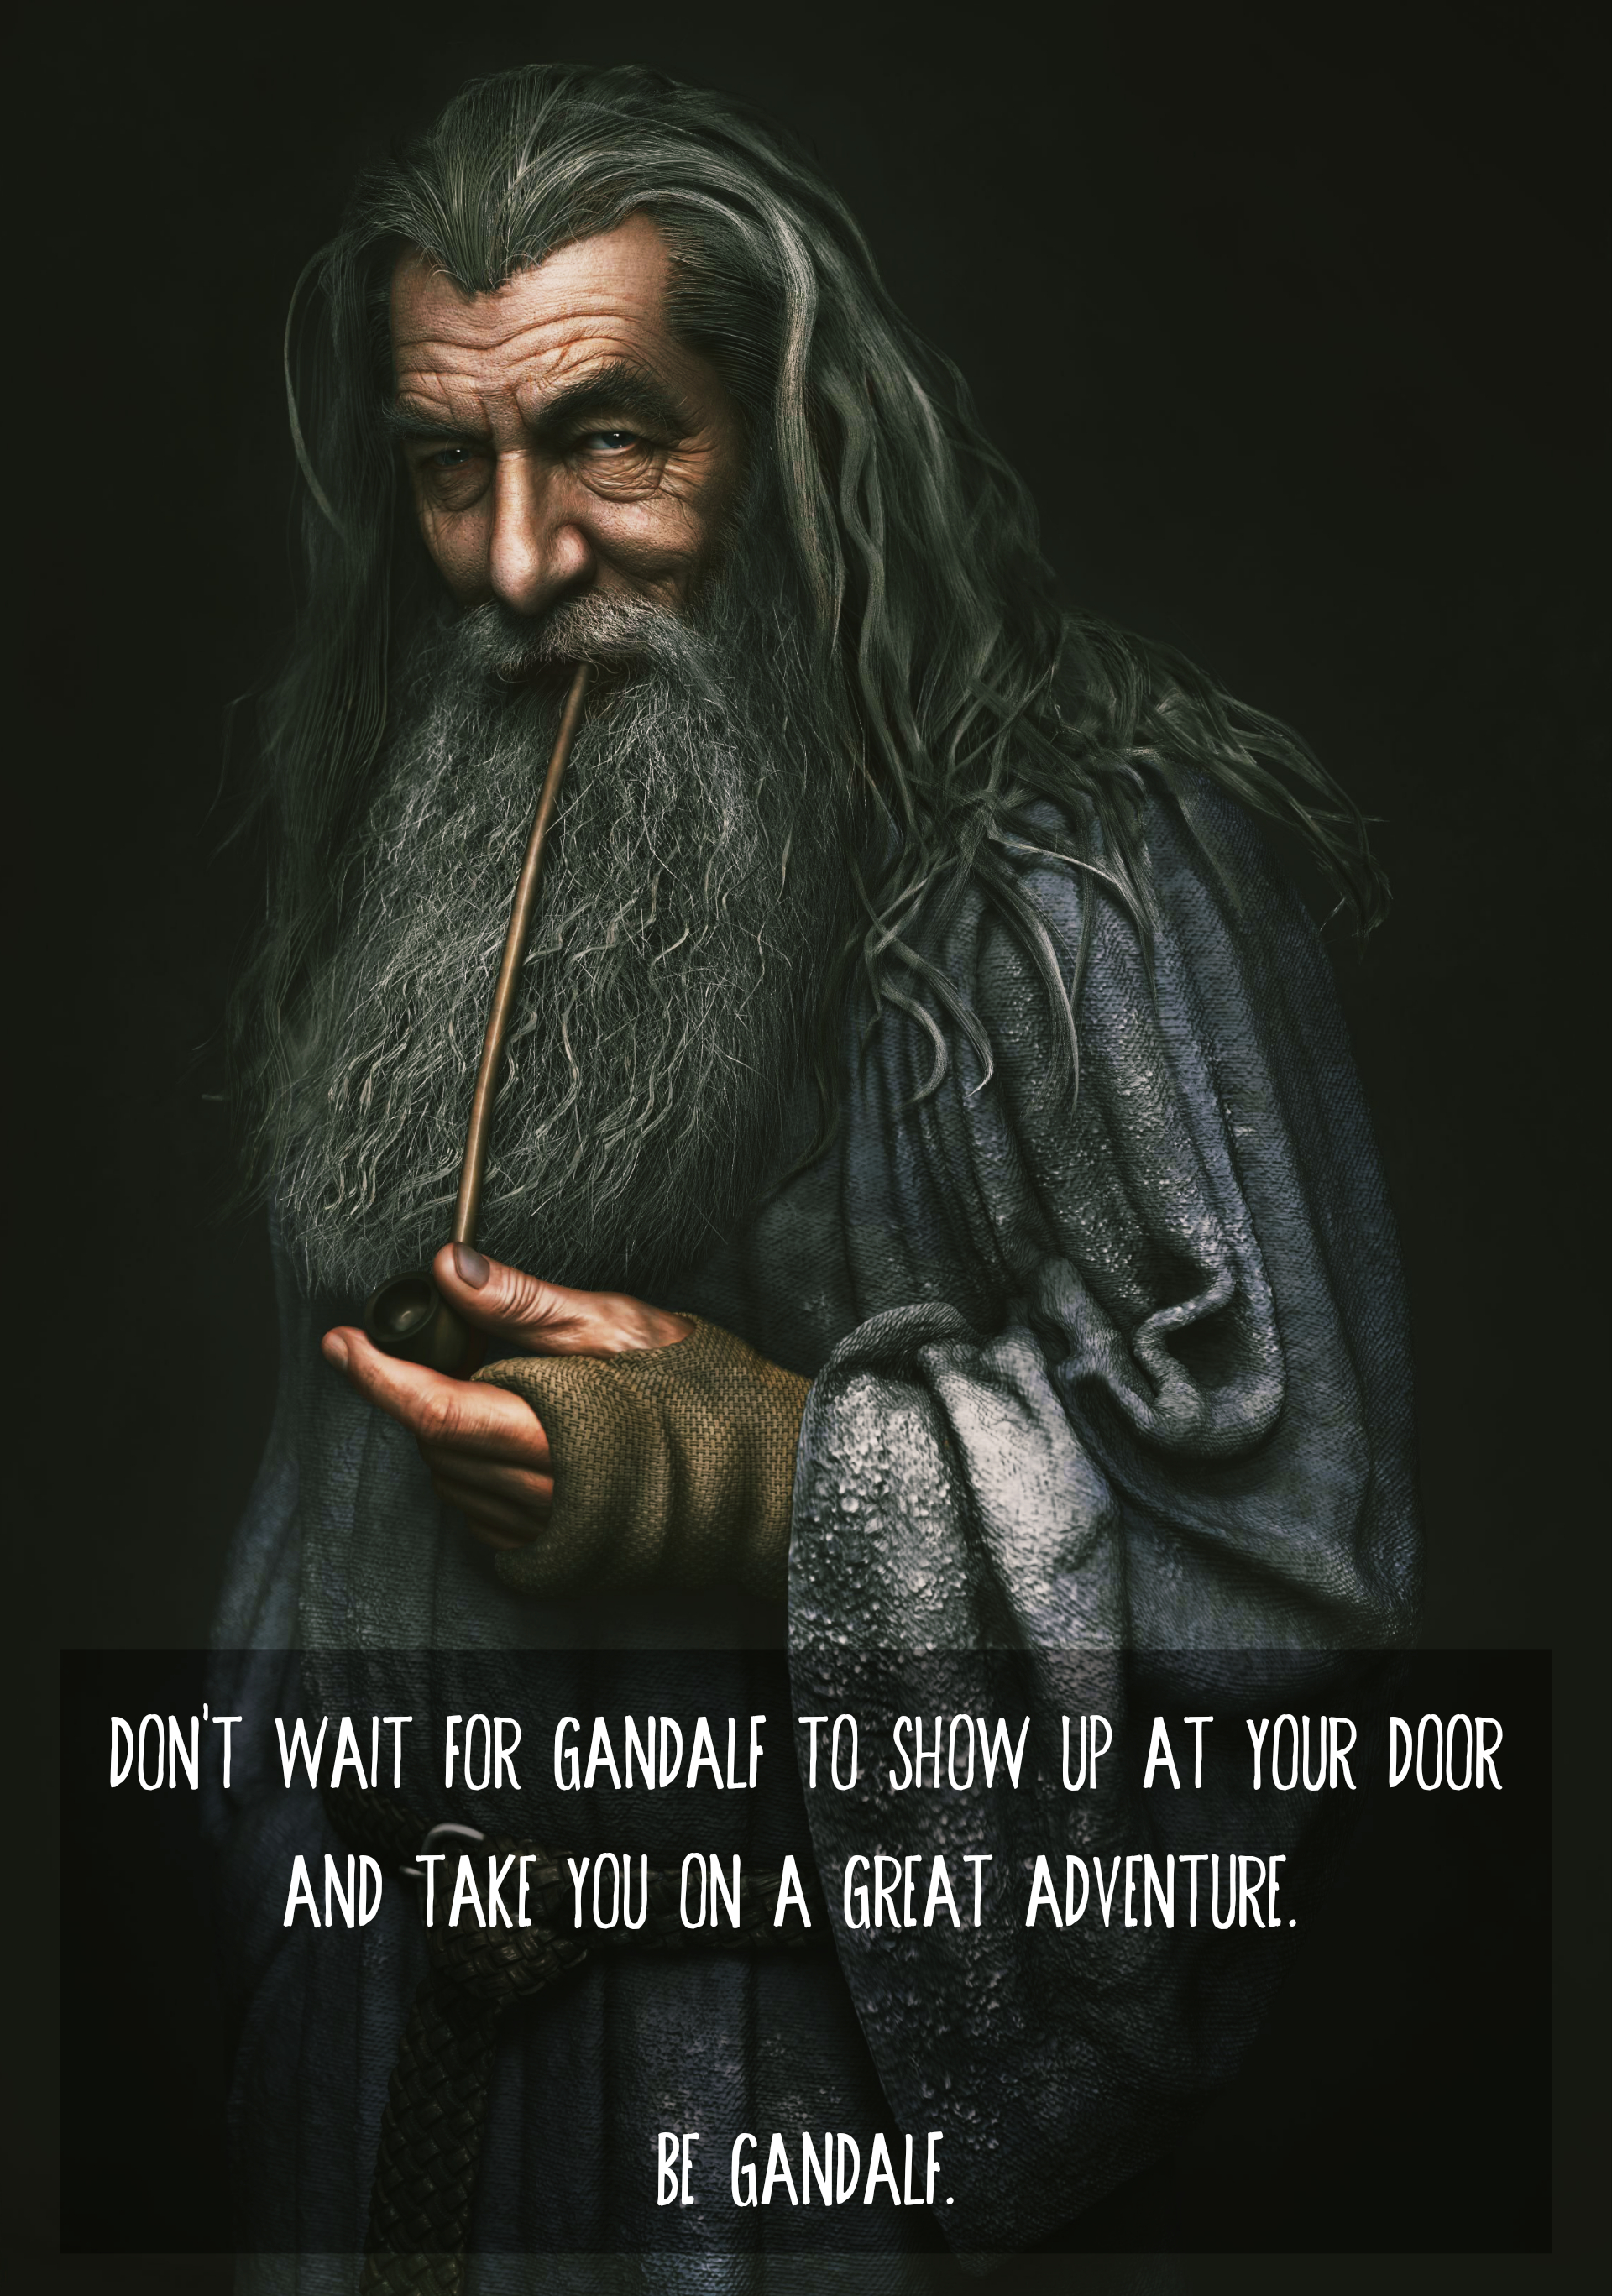 [Image] Be Gandalf.